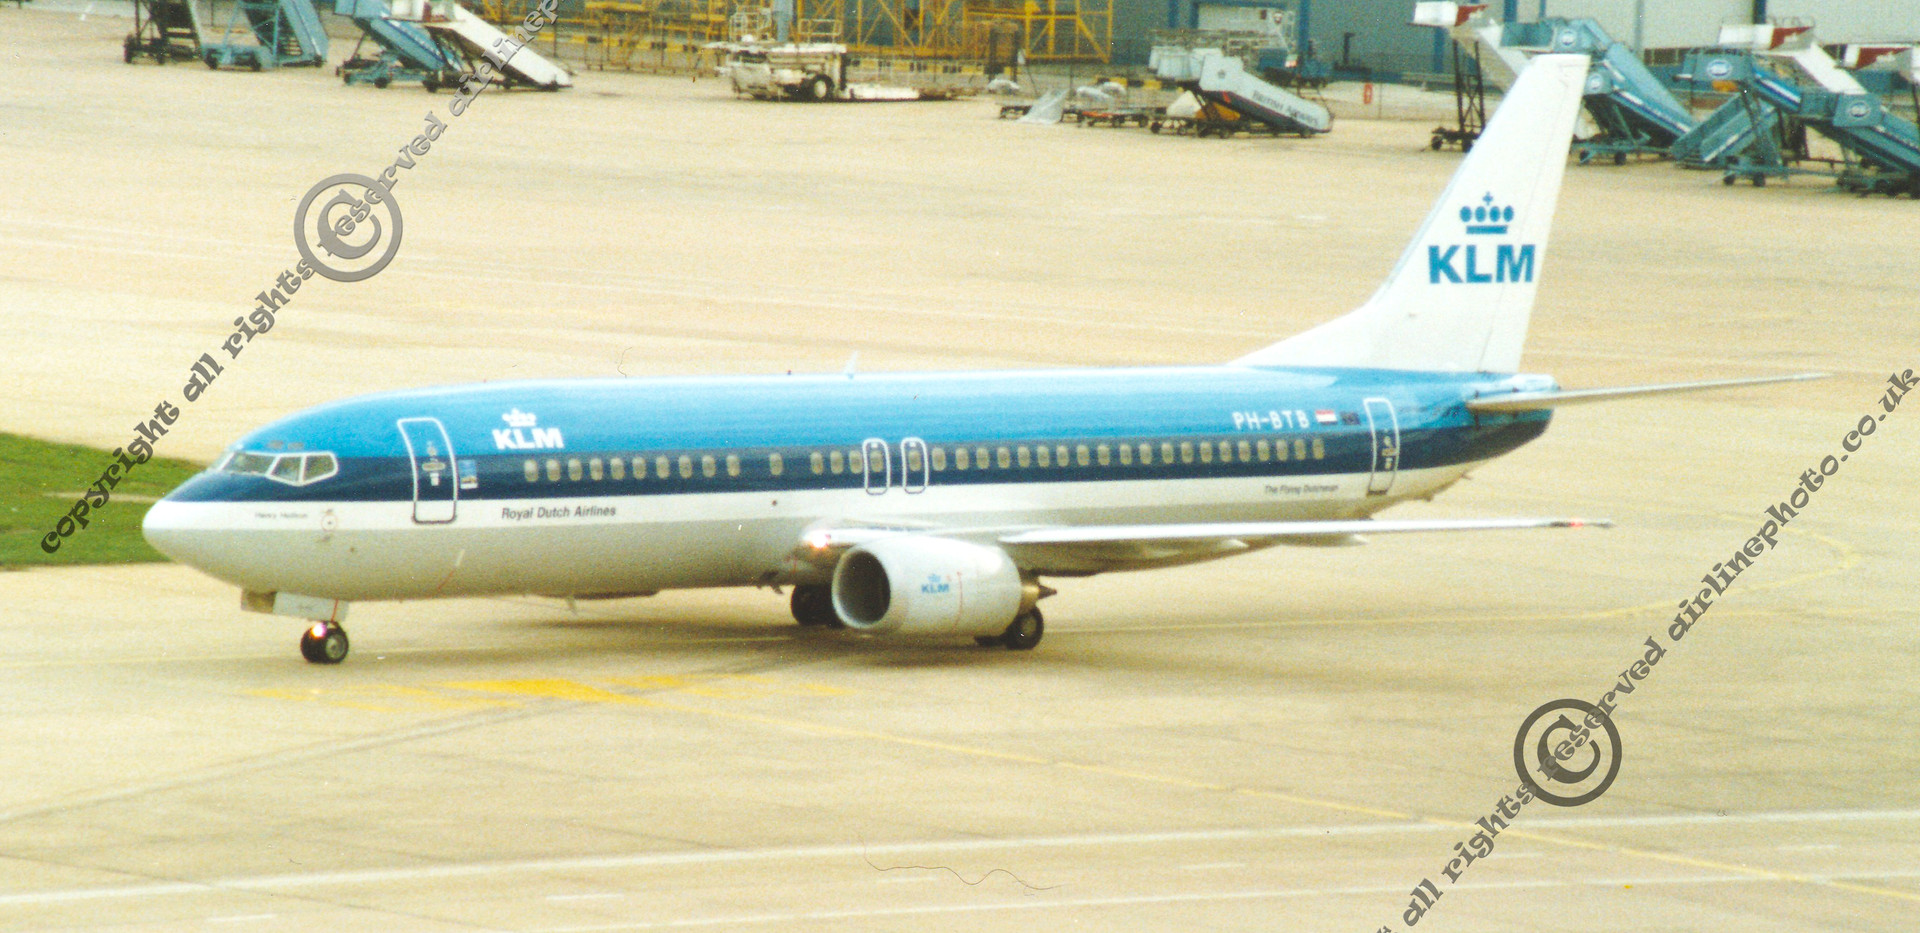 PH-BTB-KLM-737-Heathrow--1992.jpg